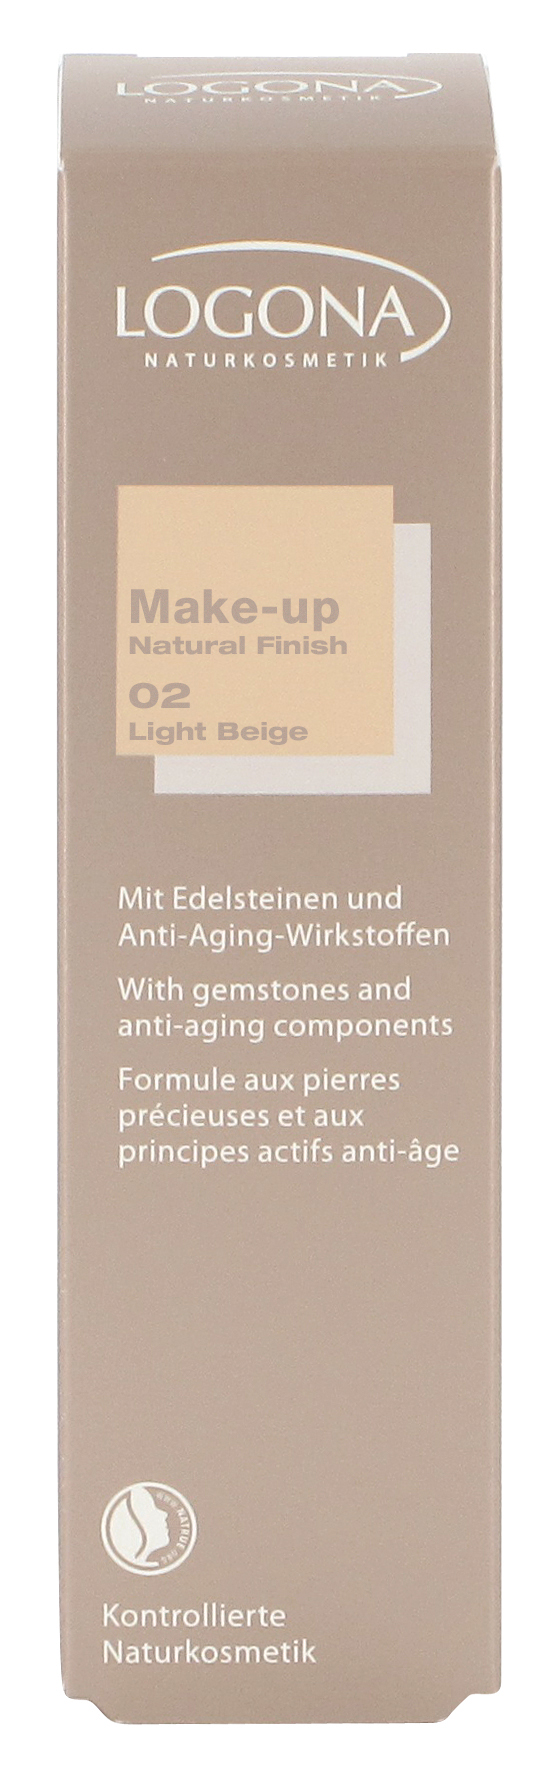 LOGONA Make-up Natural Finish No.02 světle béžová